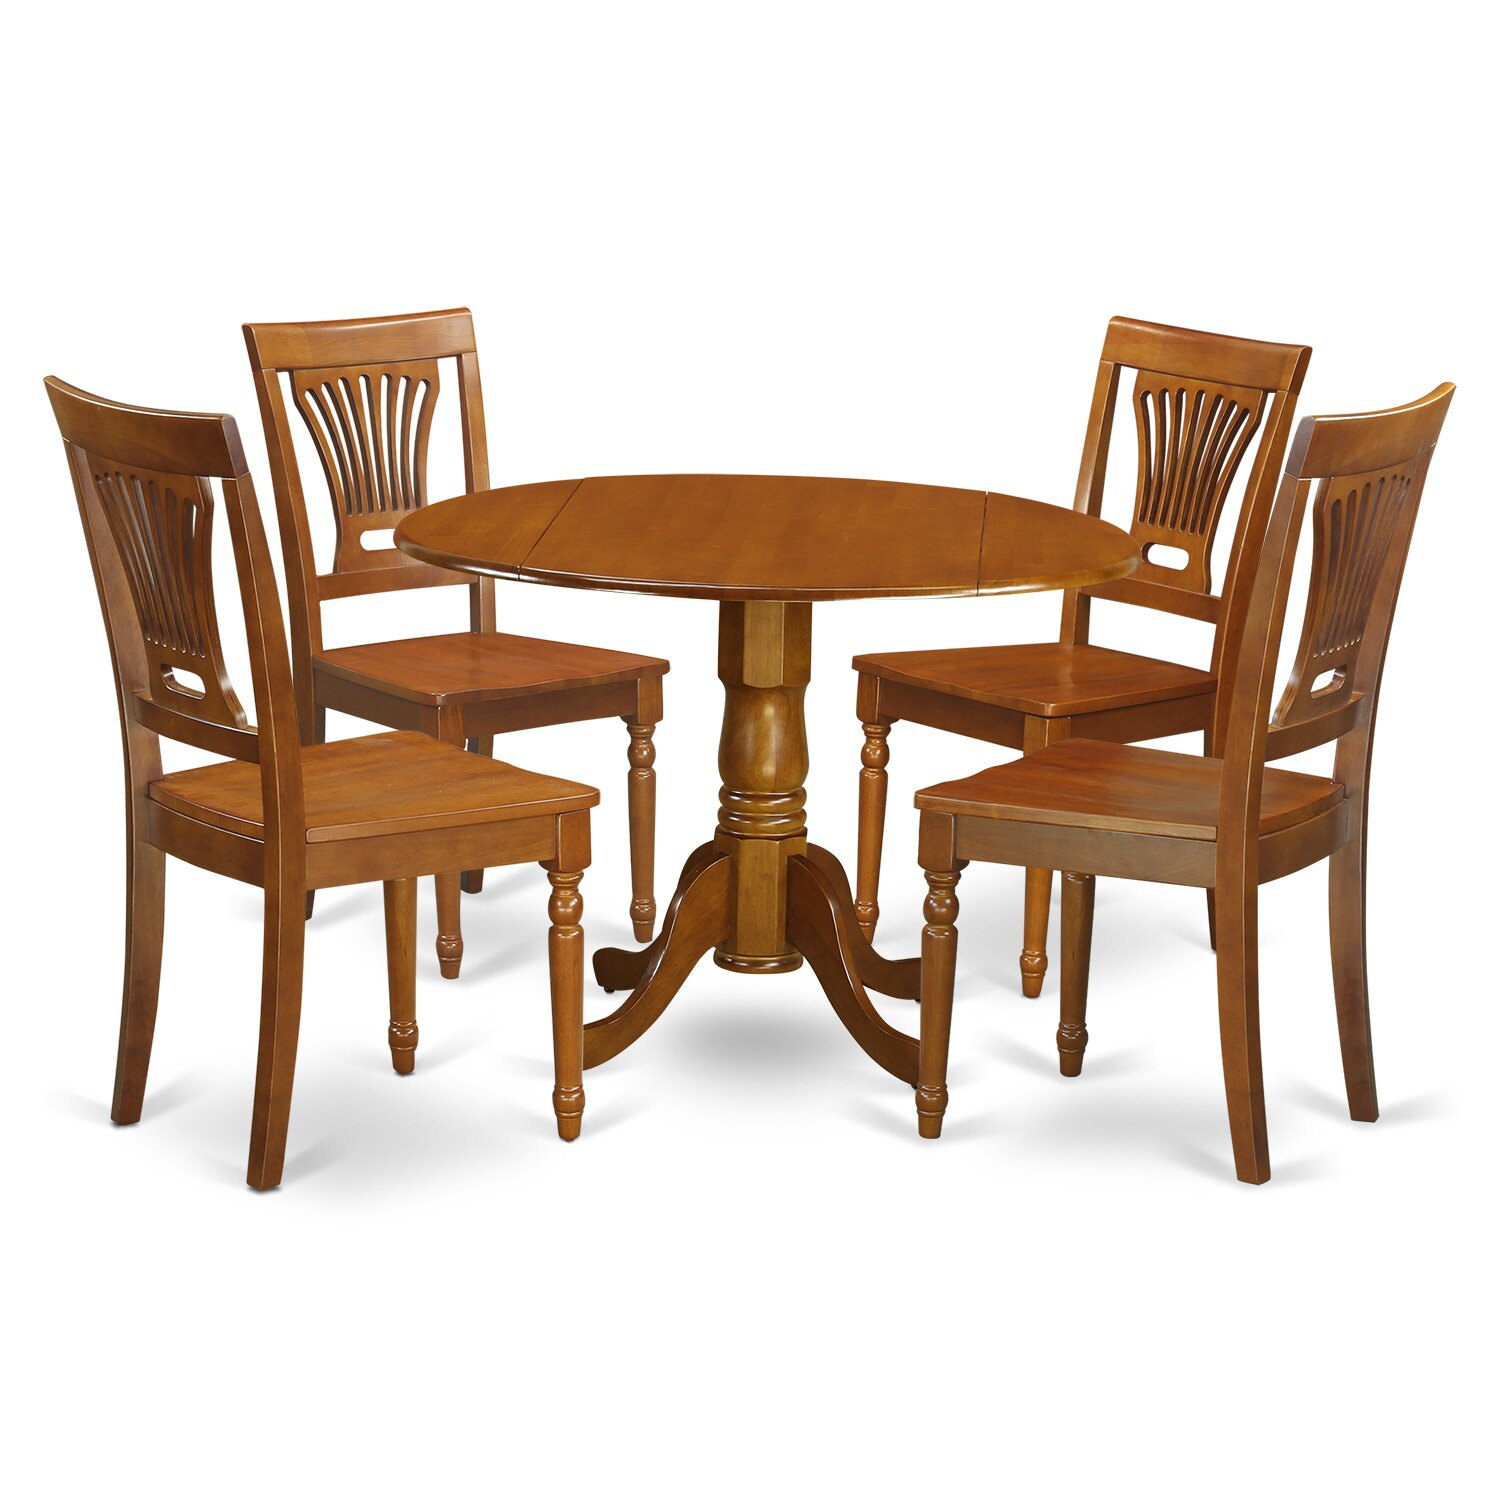 Dublin 5 piece dining set wayfair for Small kitchen table for 4